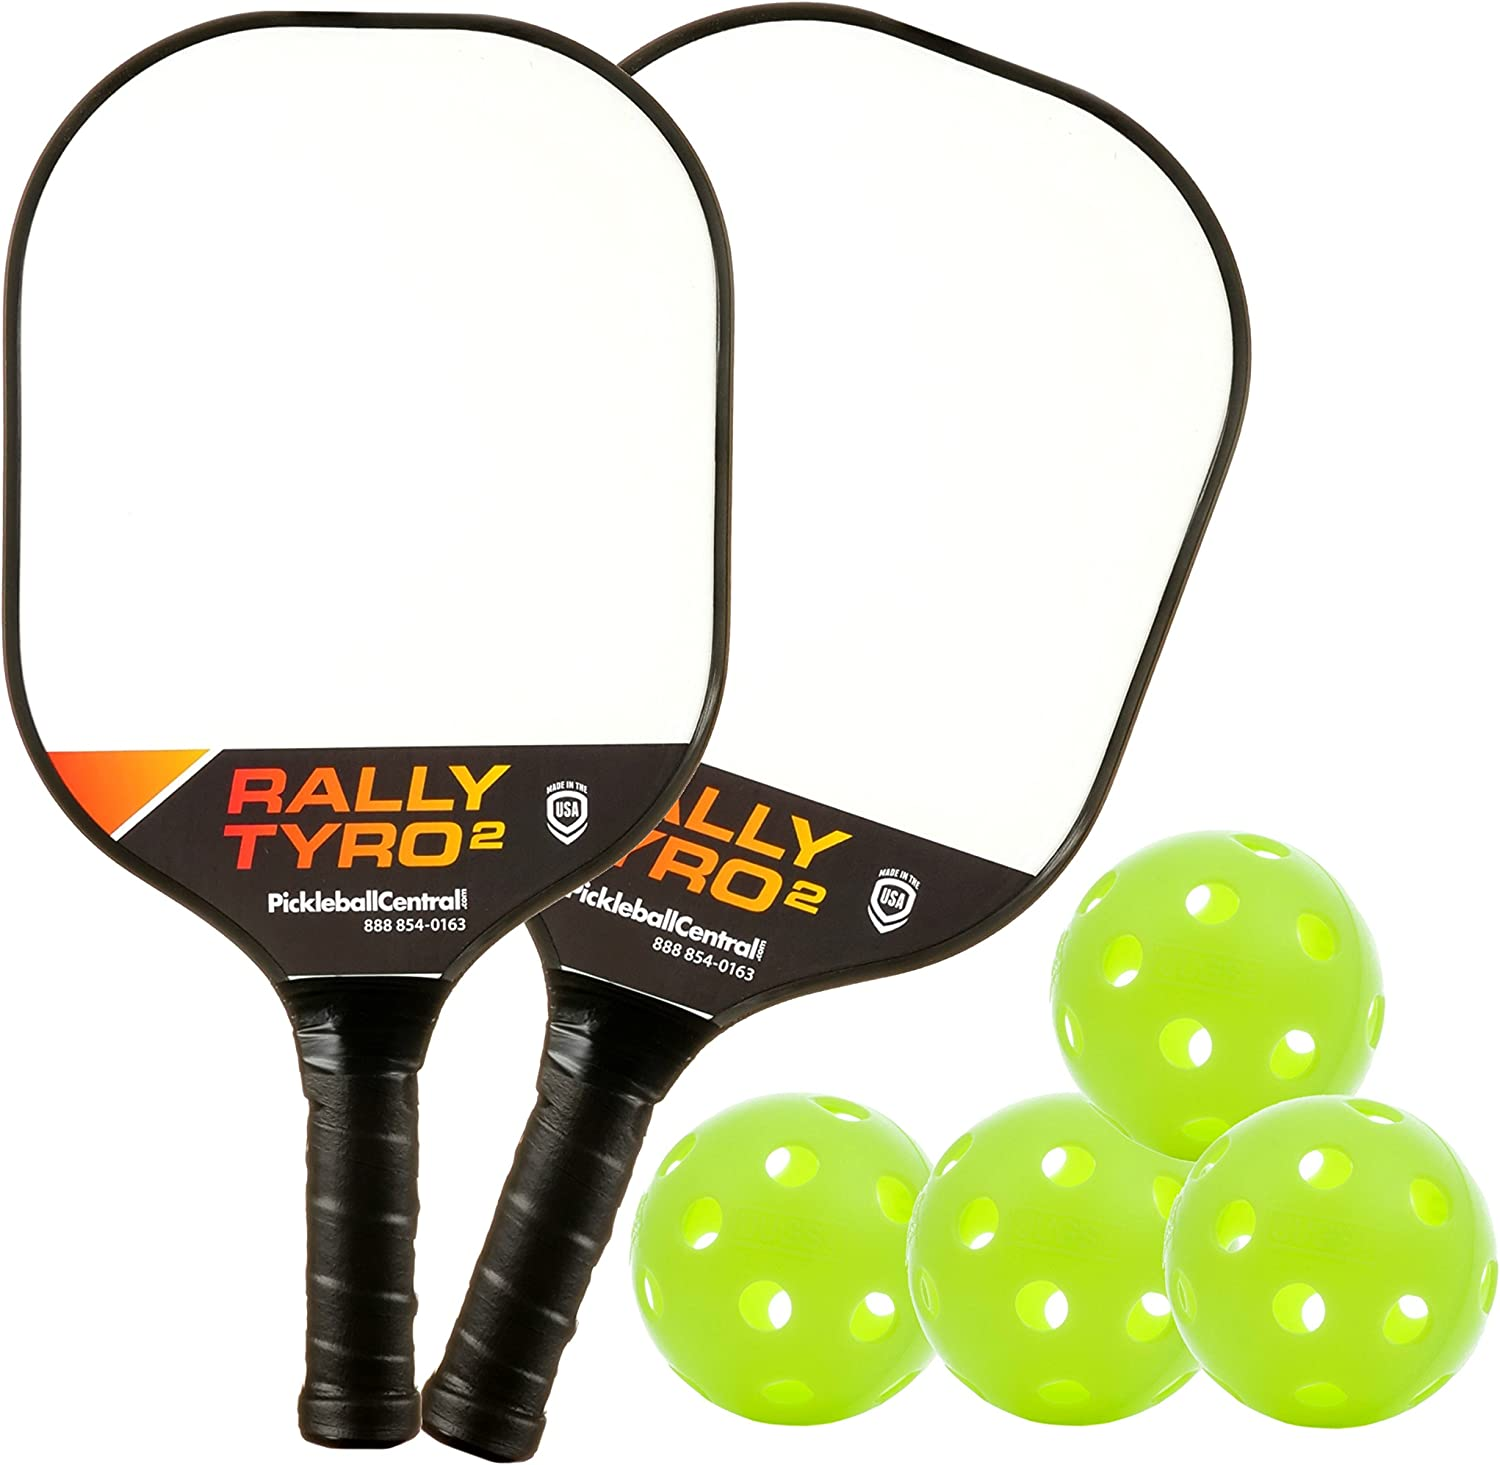 PickleballCentral Rally Tyro 2 Pickleball 2 Player Paddle and Ball Set Two (2) Rackets and Four (4) Balls | Advanced Composite Polypropylene Honeycomb Core and Fiberglass Face || Great Gift : Sports & Outdoors